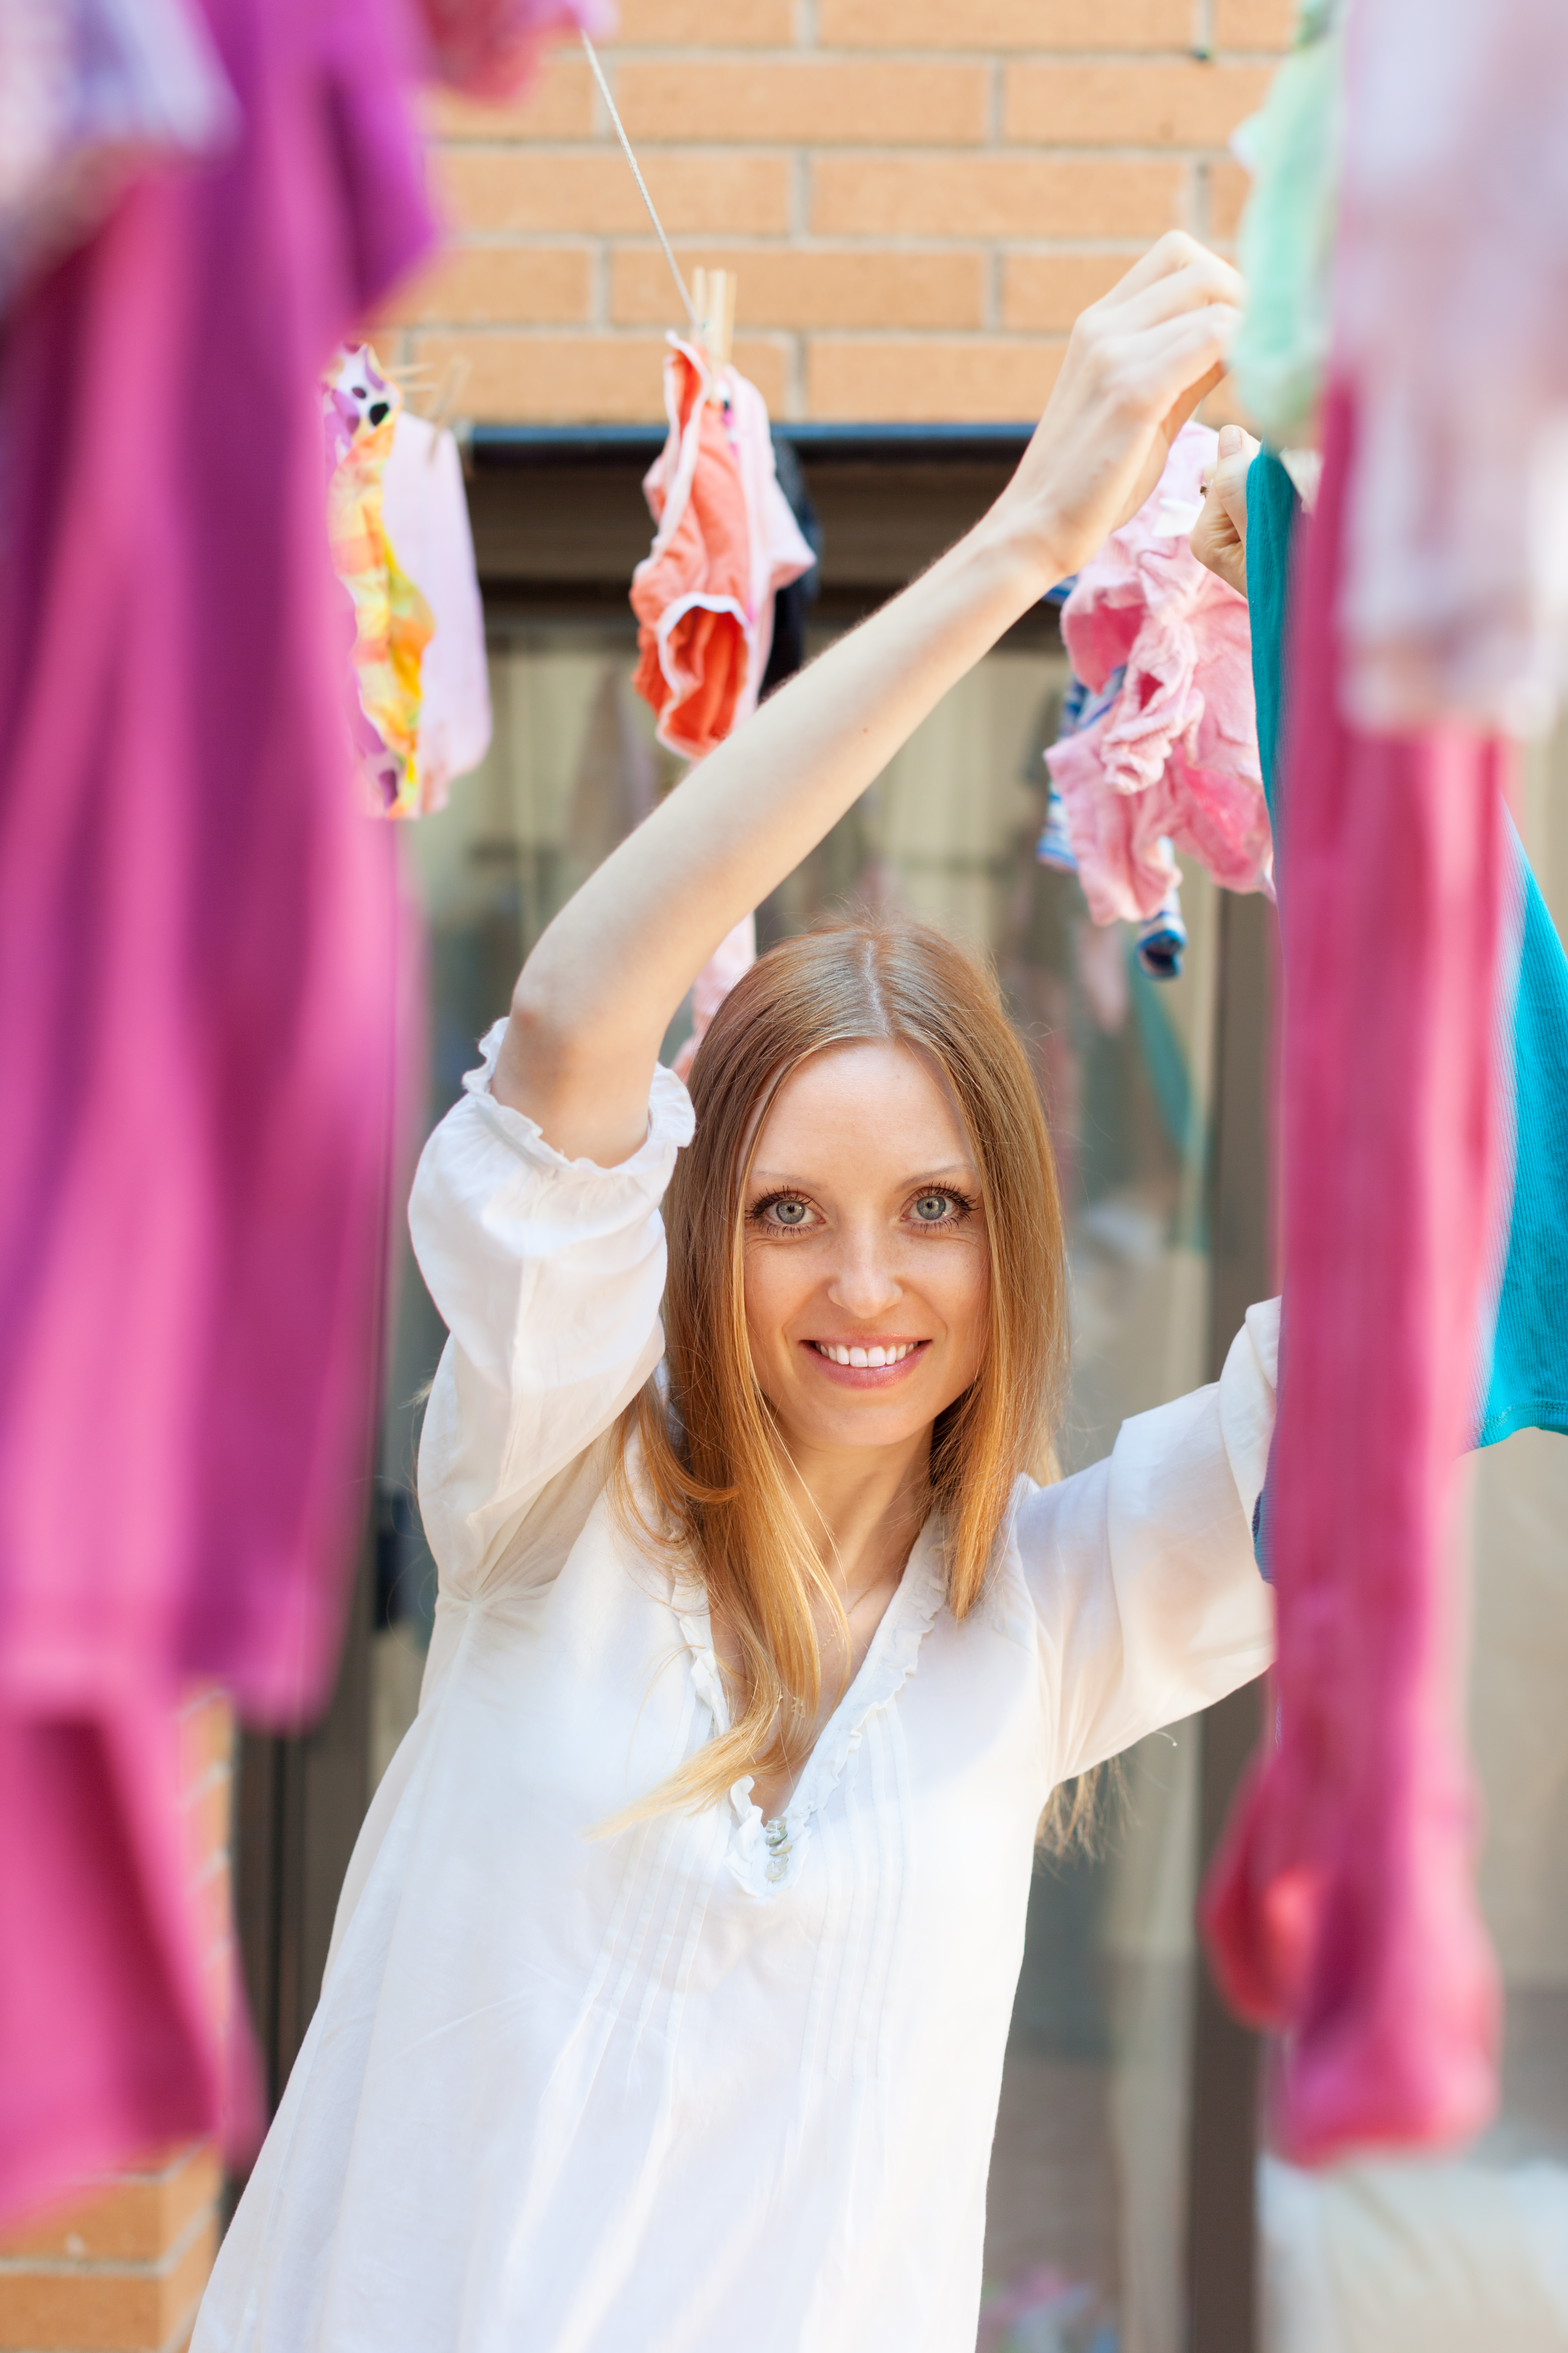 woman hanging clothes to dry  after laundry